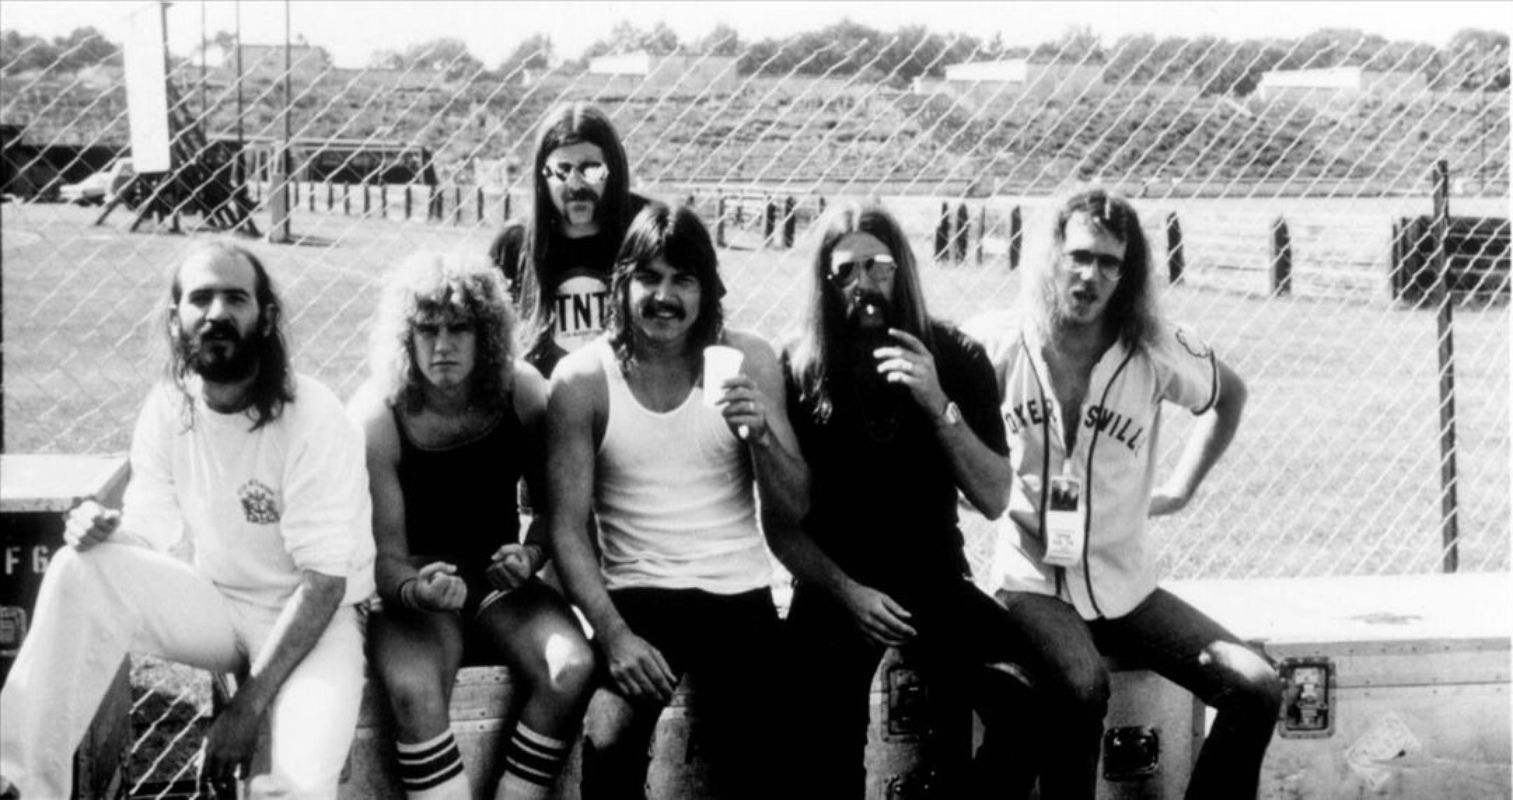 Molly hatchet 1